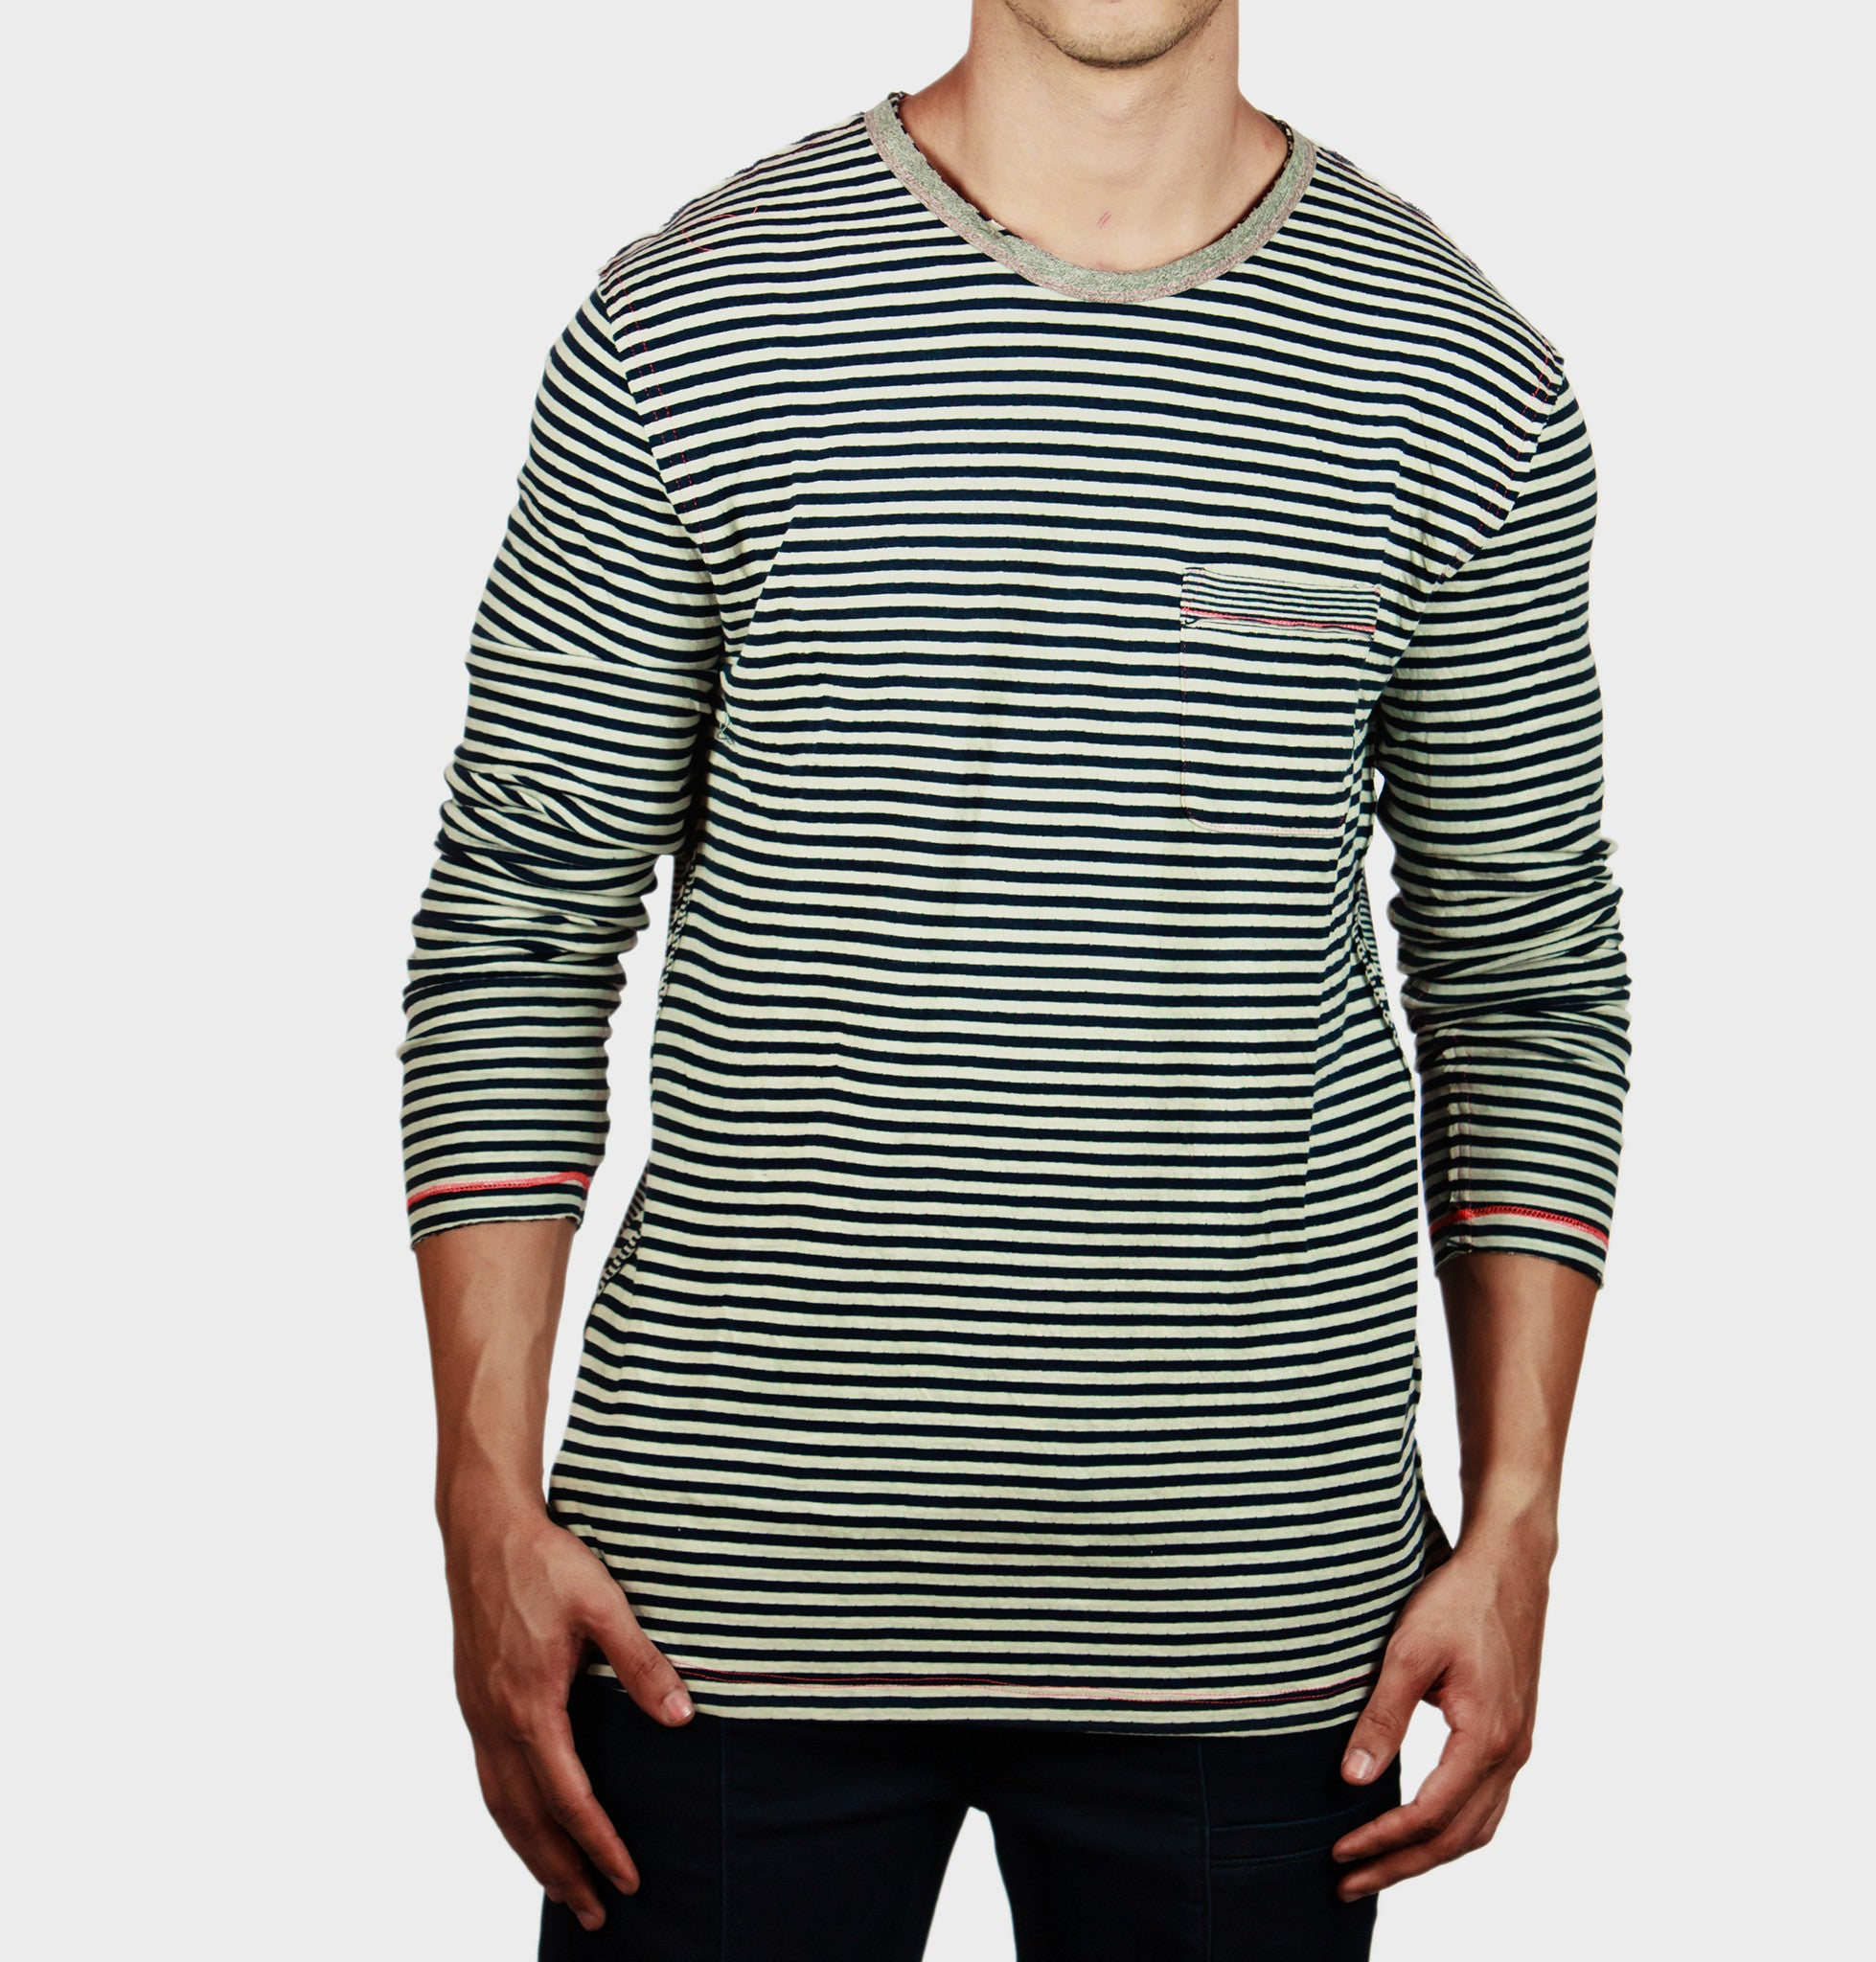 Maximo Navy Striped Sweatshirt